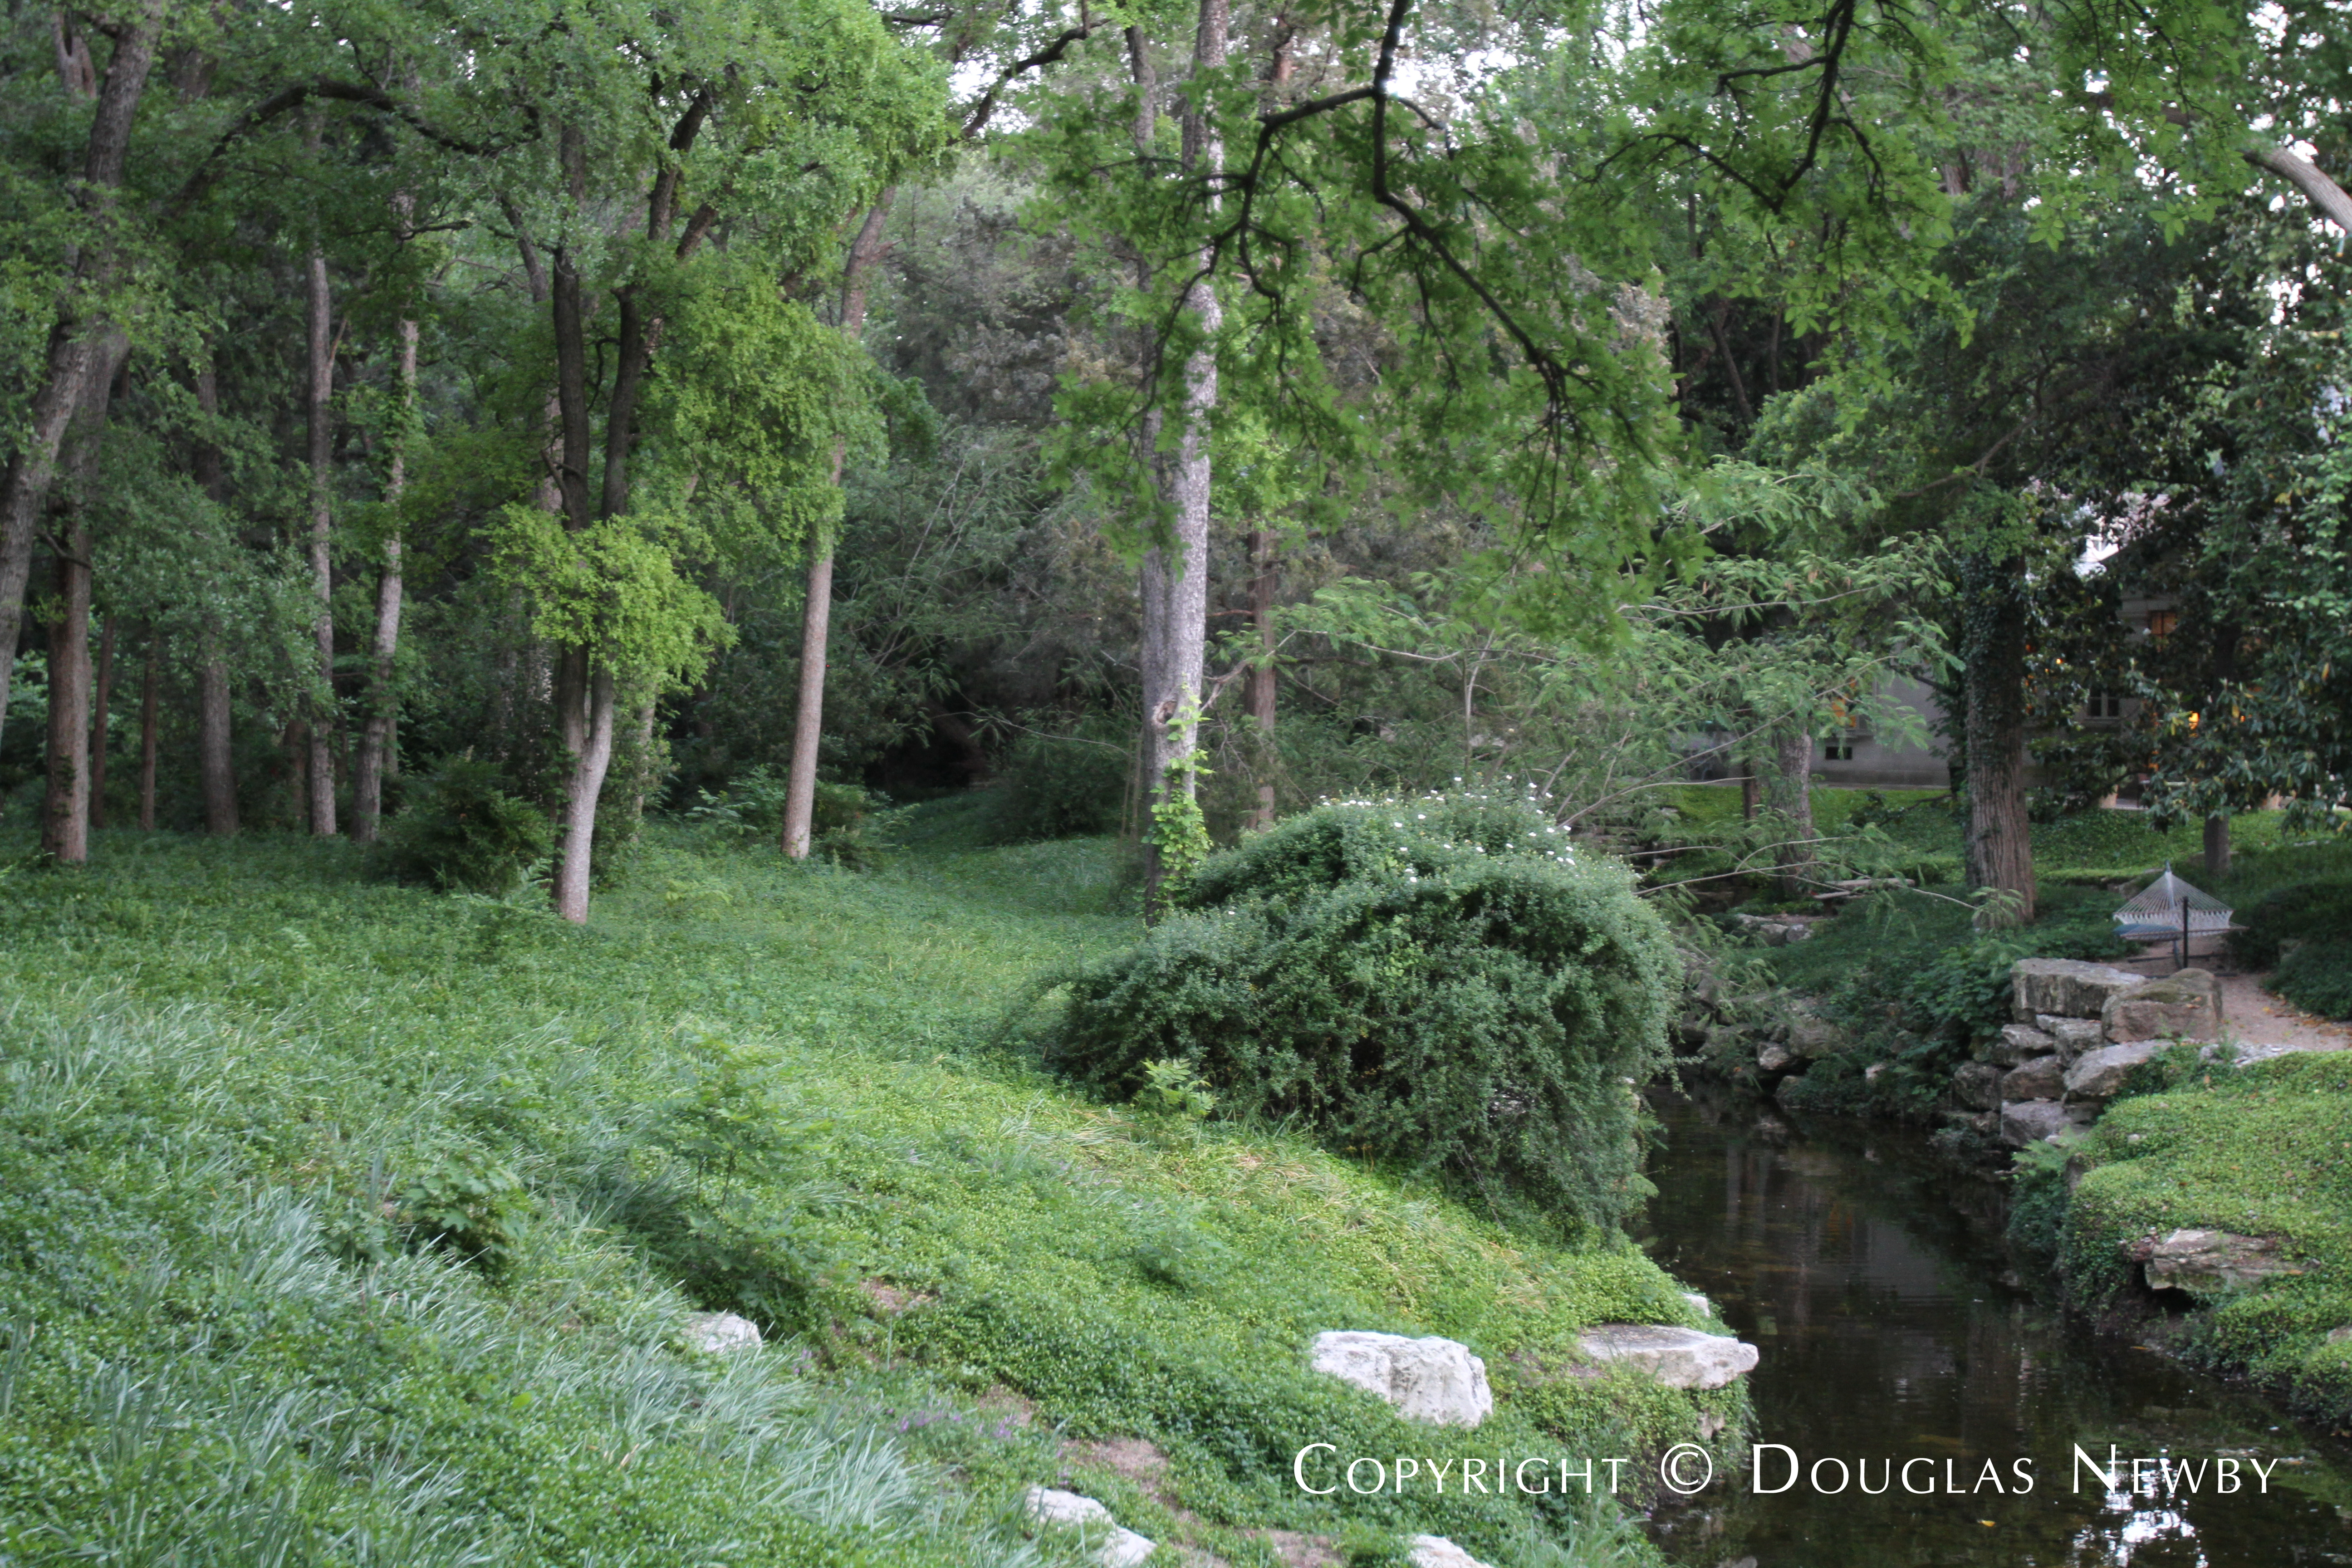 Creek and Wilderness Surrounding Estate Home in Dallas